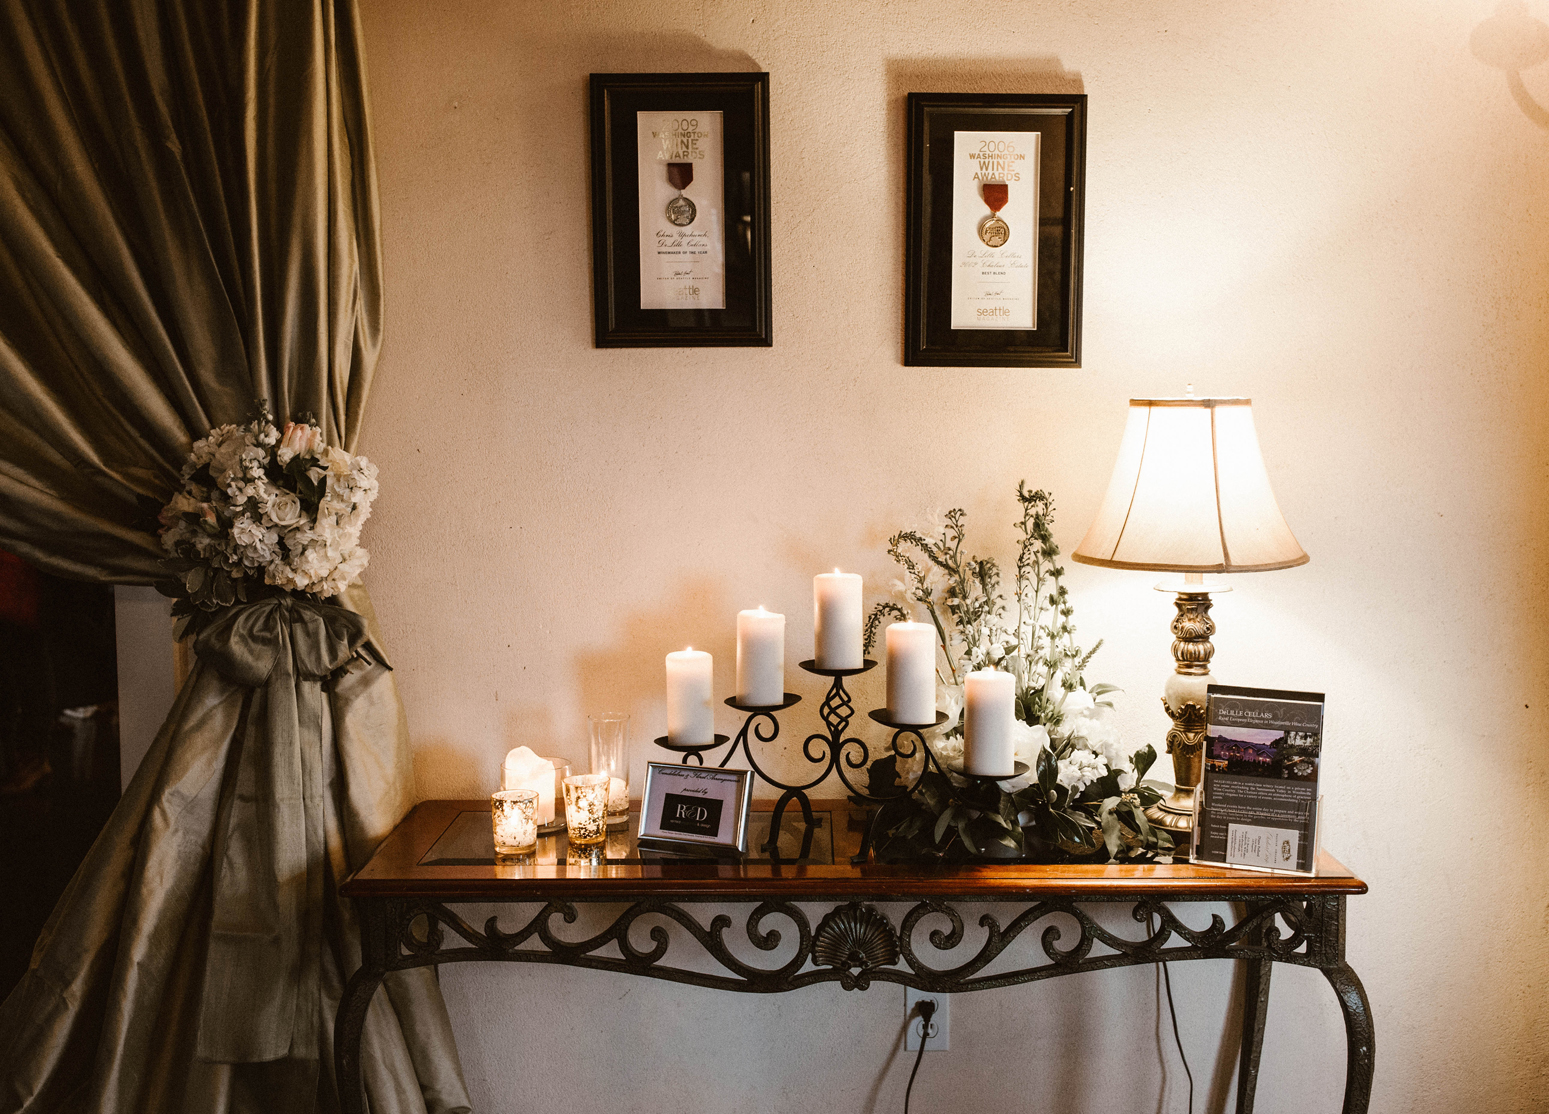 DeLille+Cellars_The+Chateau_Woodinville_2017_Weddings+In+Woodinville91.jpg